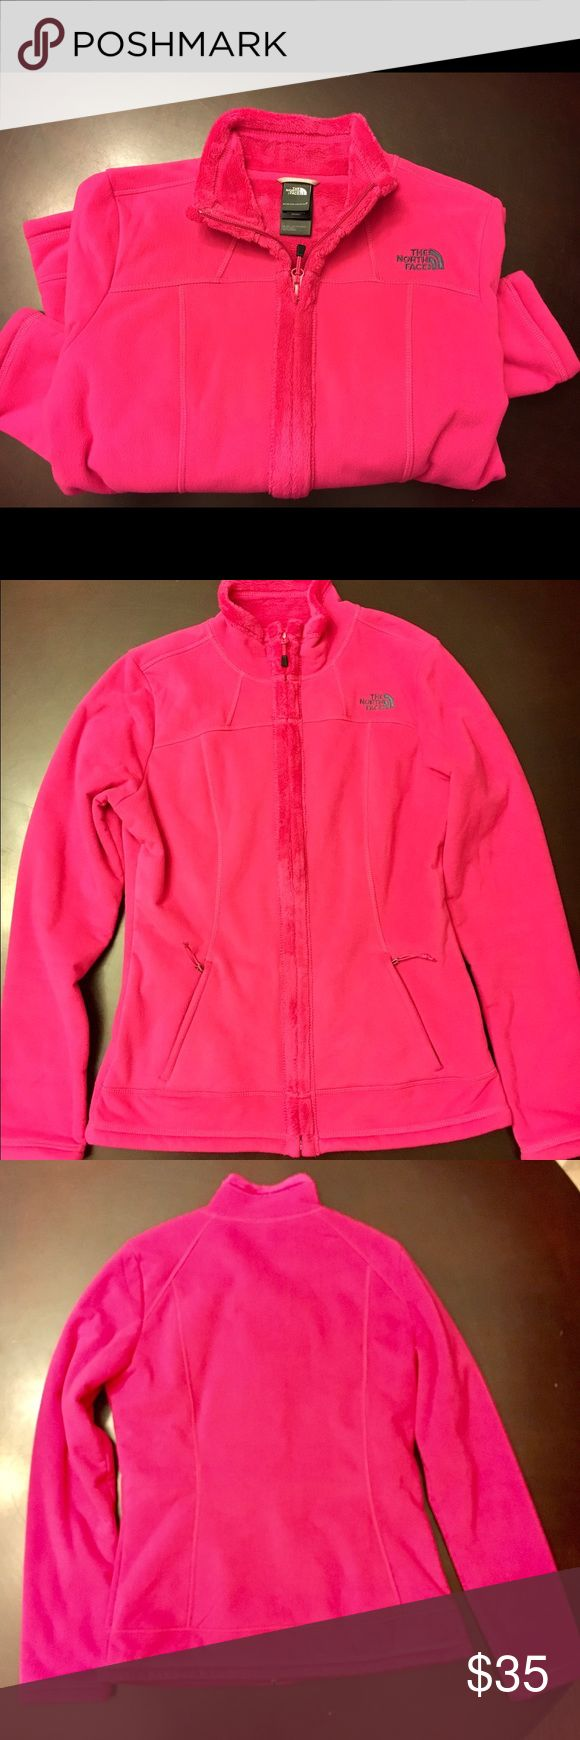 North Face Hot Pink Fur Jacket North Face fur jacket - hot pink.  Fur lined in the inside. Great condition - worn only a few times. The North Face Jackets & Coats